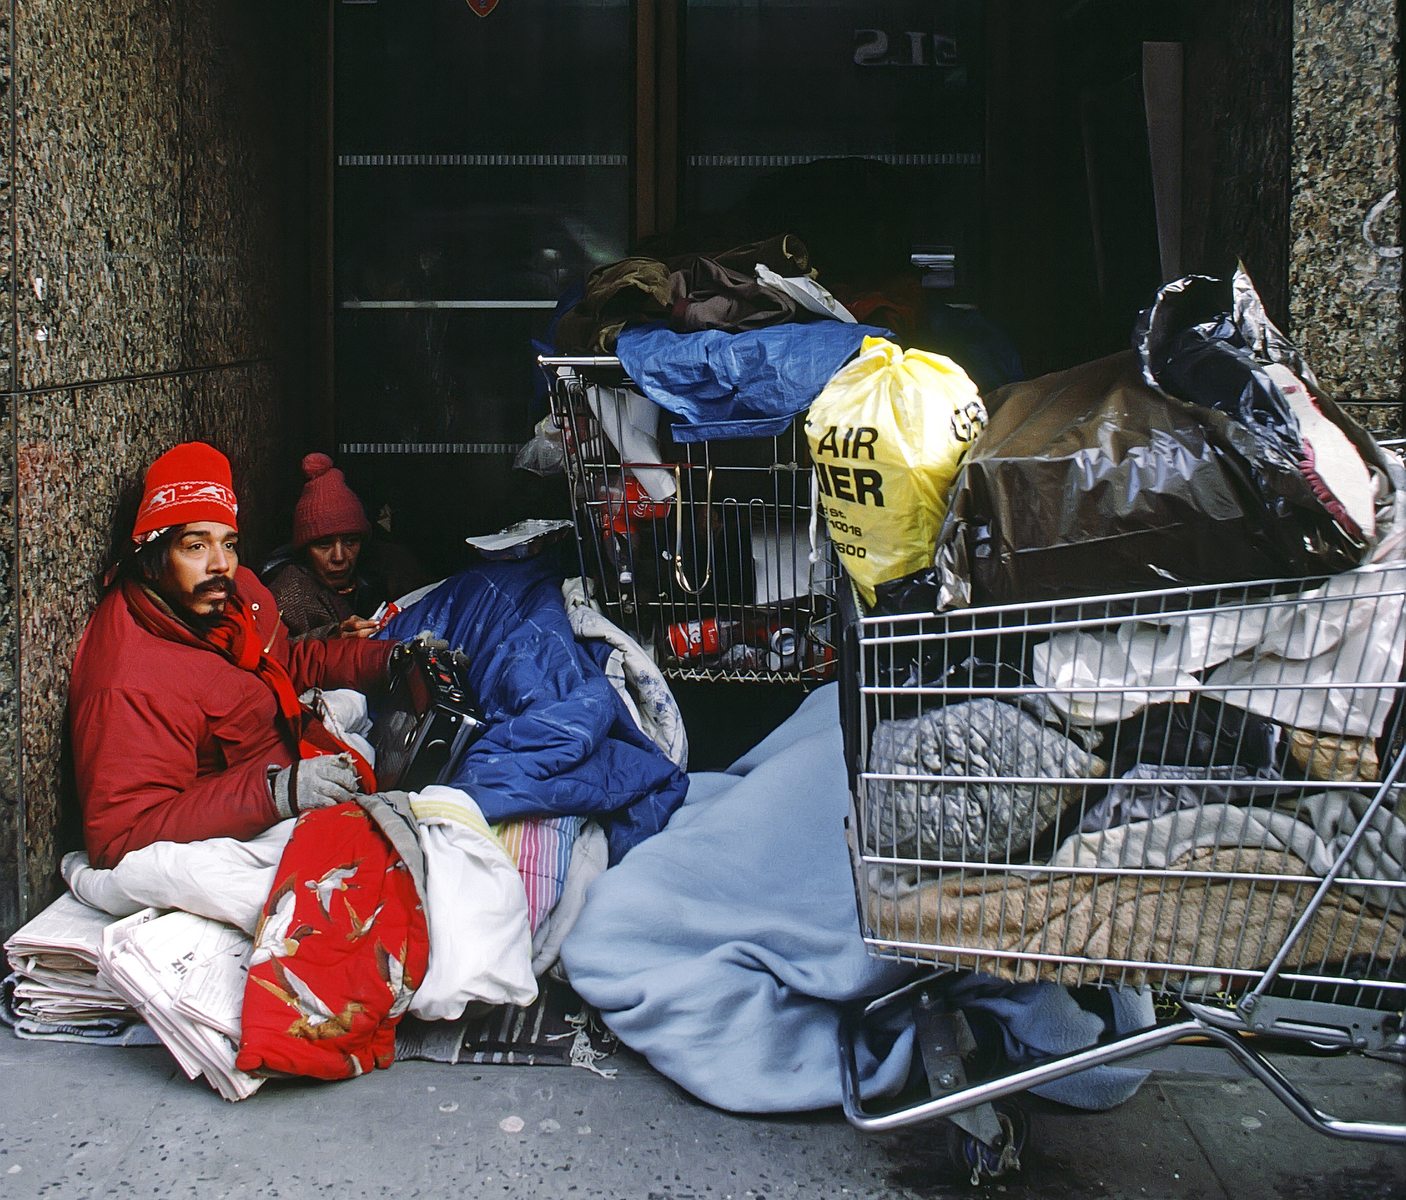 1999 - Homeless couple living on the streets of New York City with shopping carts.